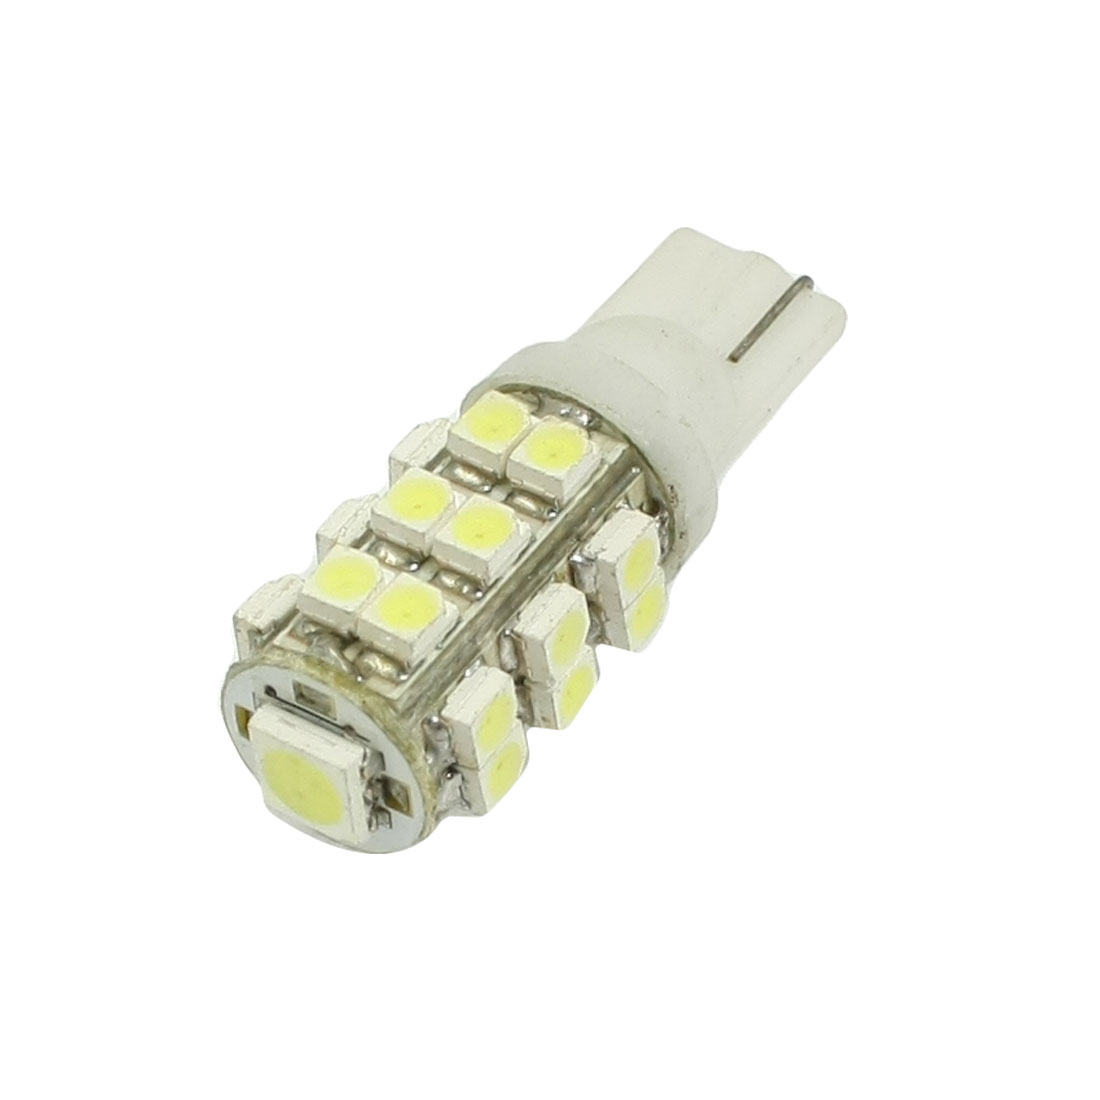 Auto-Vehicle-White-T10-W5W-24-3528-1210-SMD-LED-Light-Lamp-Bulb